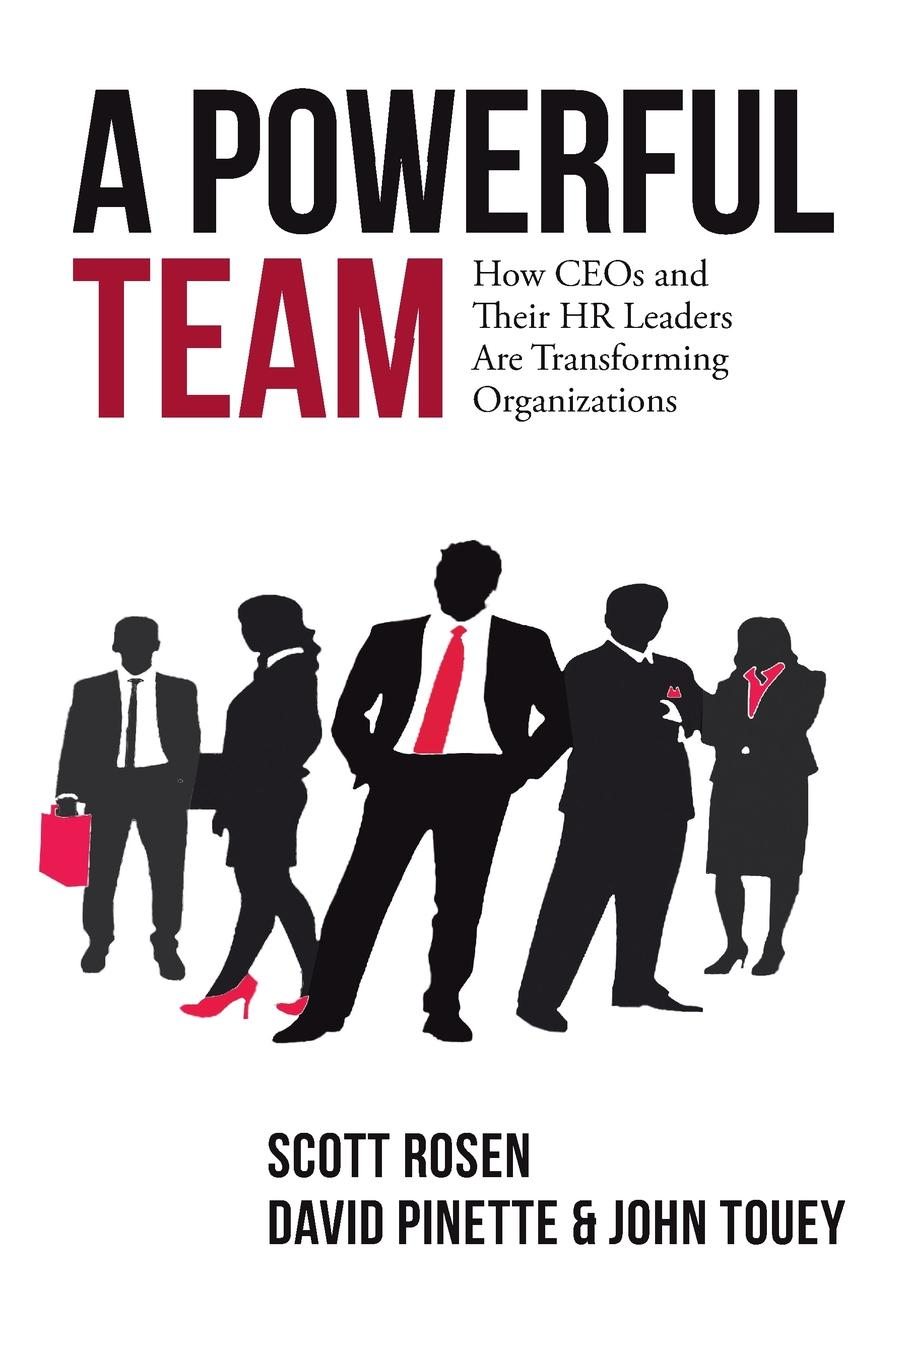 A Powerful Team. How CEOs and Their HR Leaders Are Transforming Organizations A Powerful Team shows why HR strategy matters and it mean...